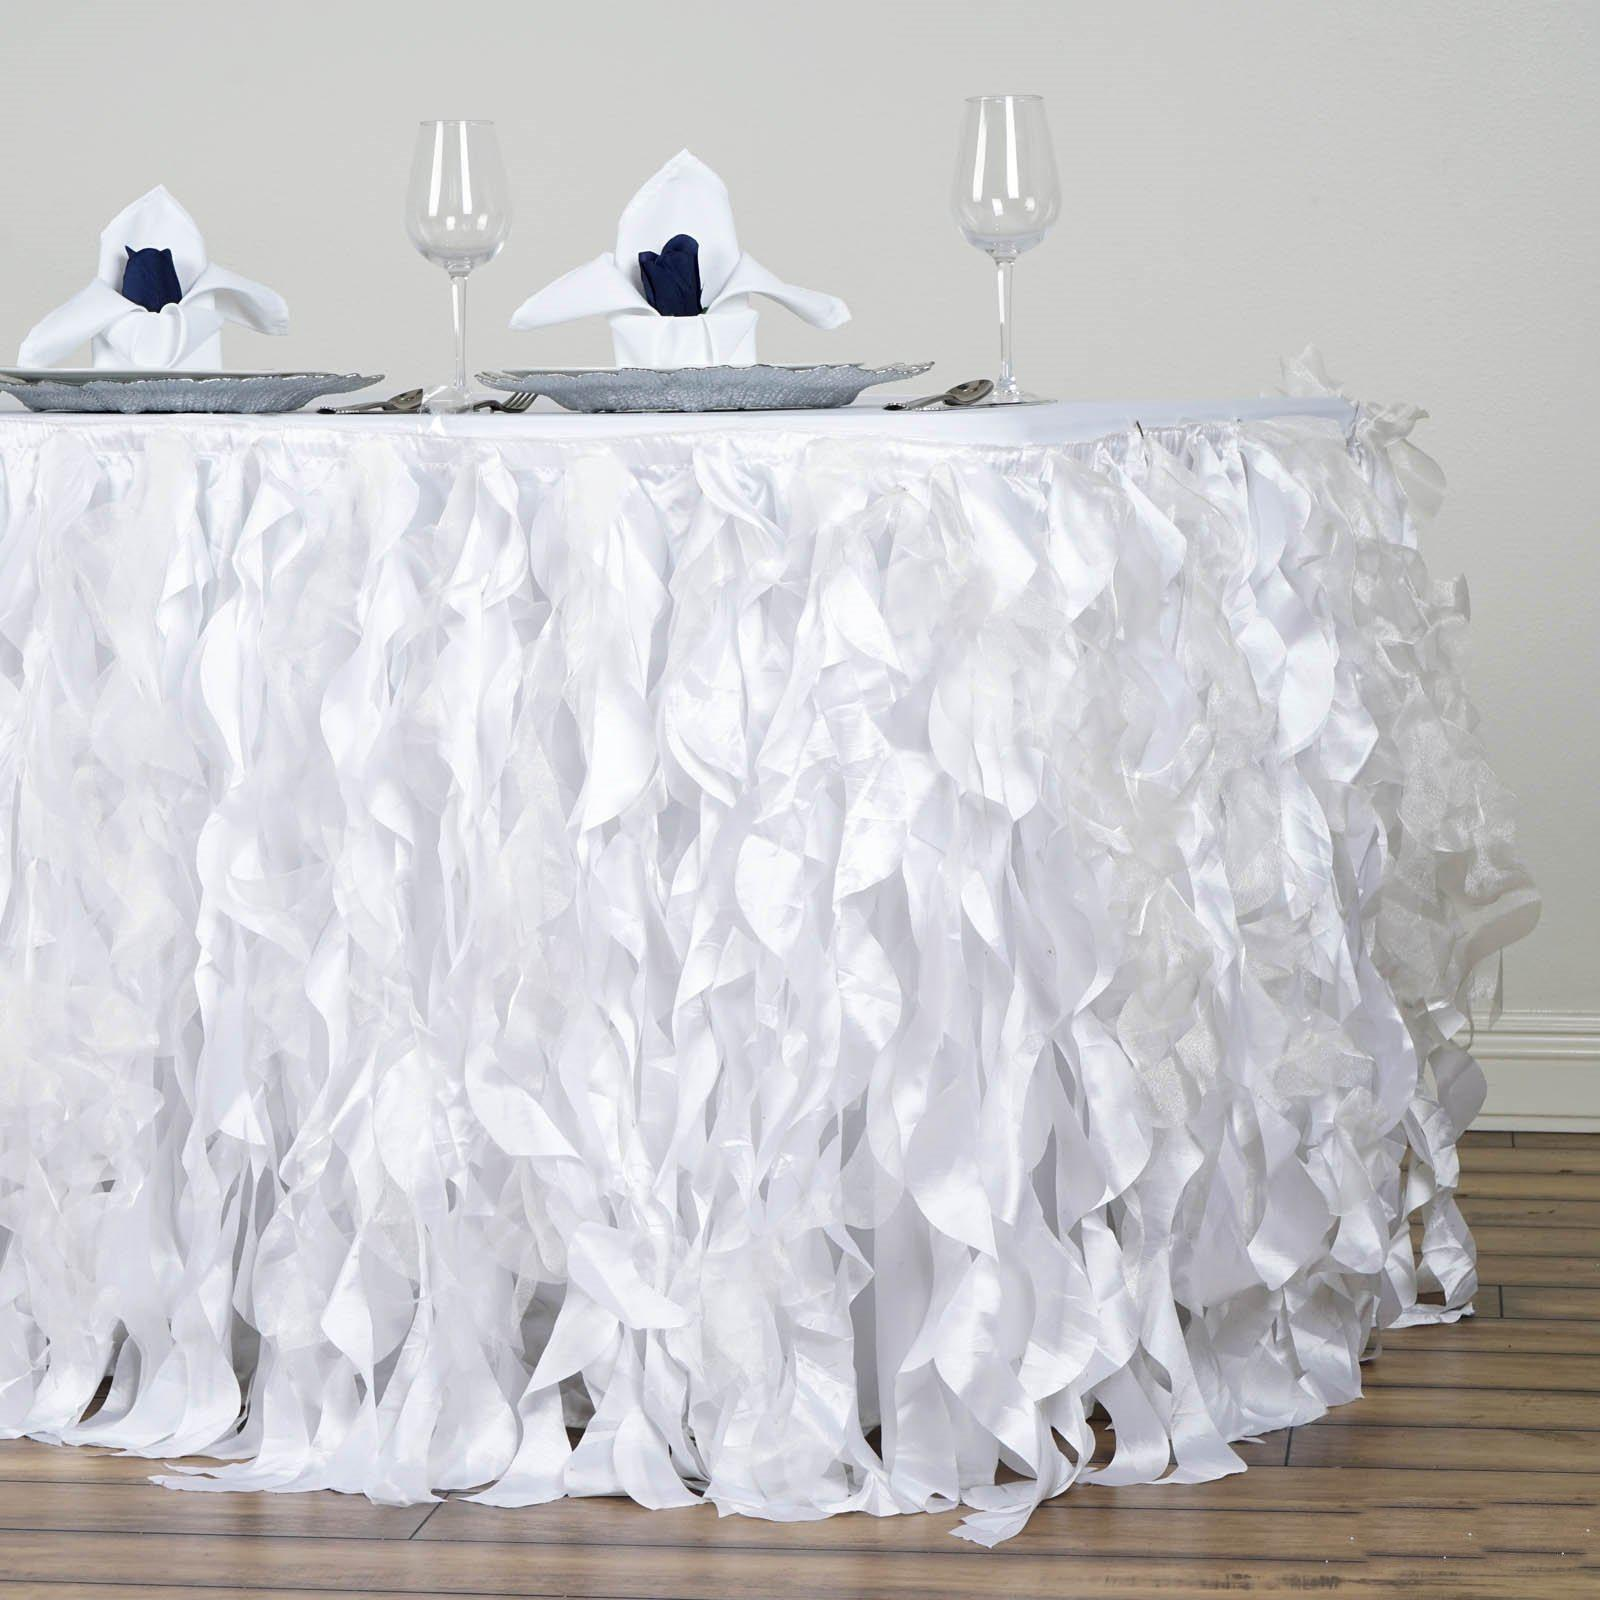 21ft White Curly Willow Taffeta Table Skirt Tableclothsfactory